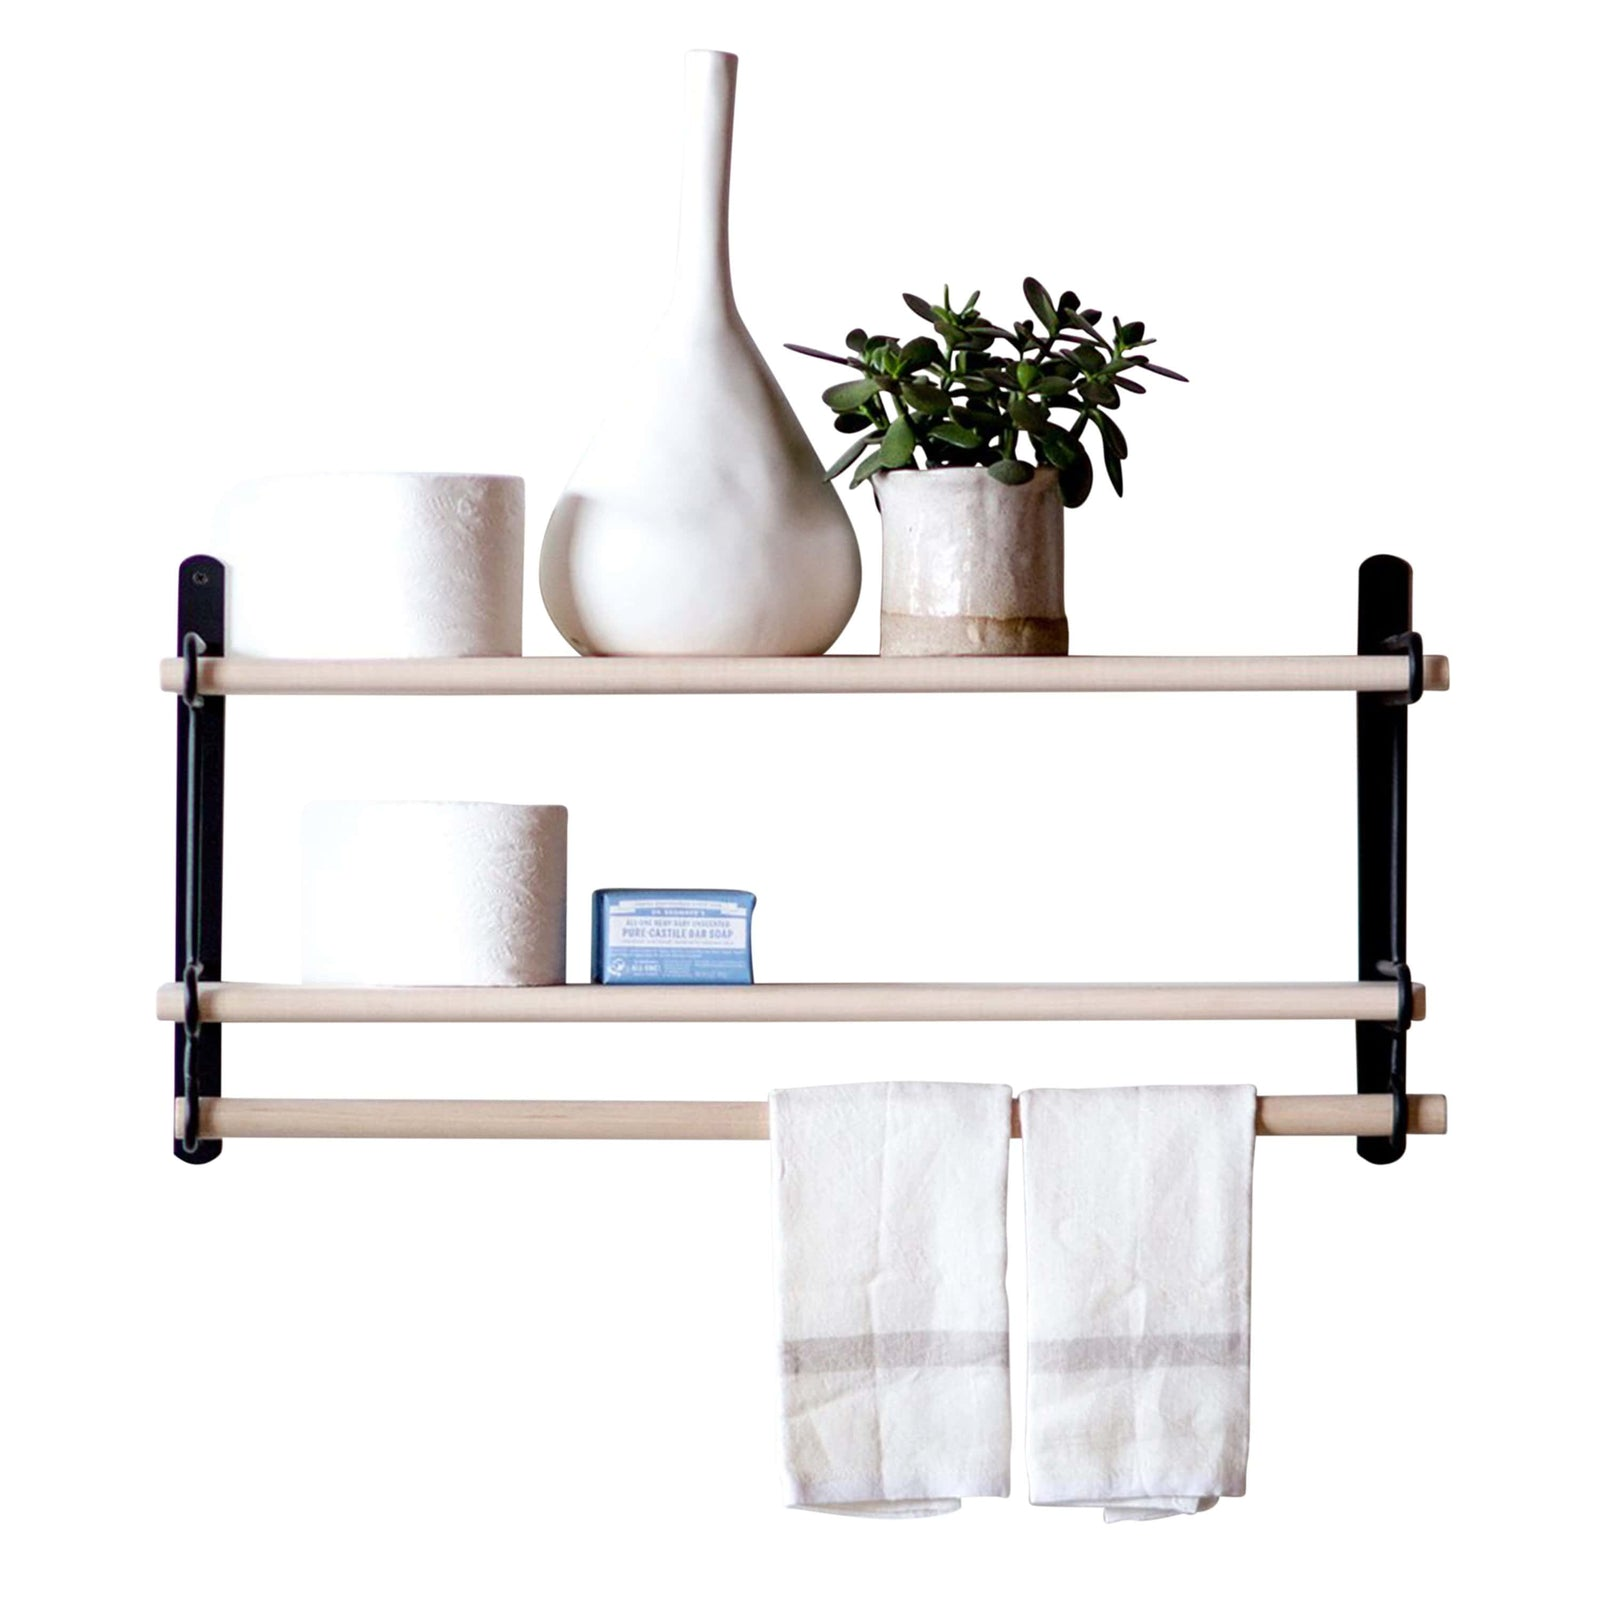 Lostine Wall Decor Matte Black Logan Wall Rack, Double